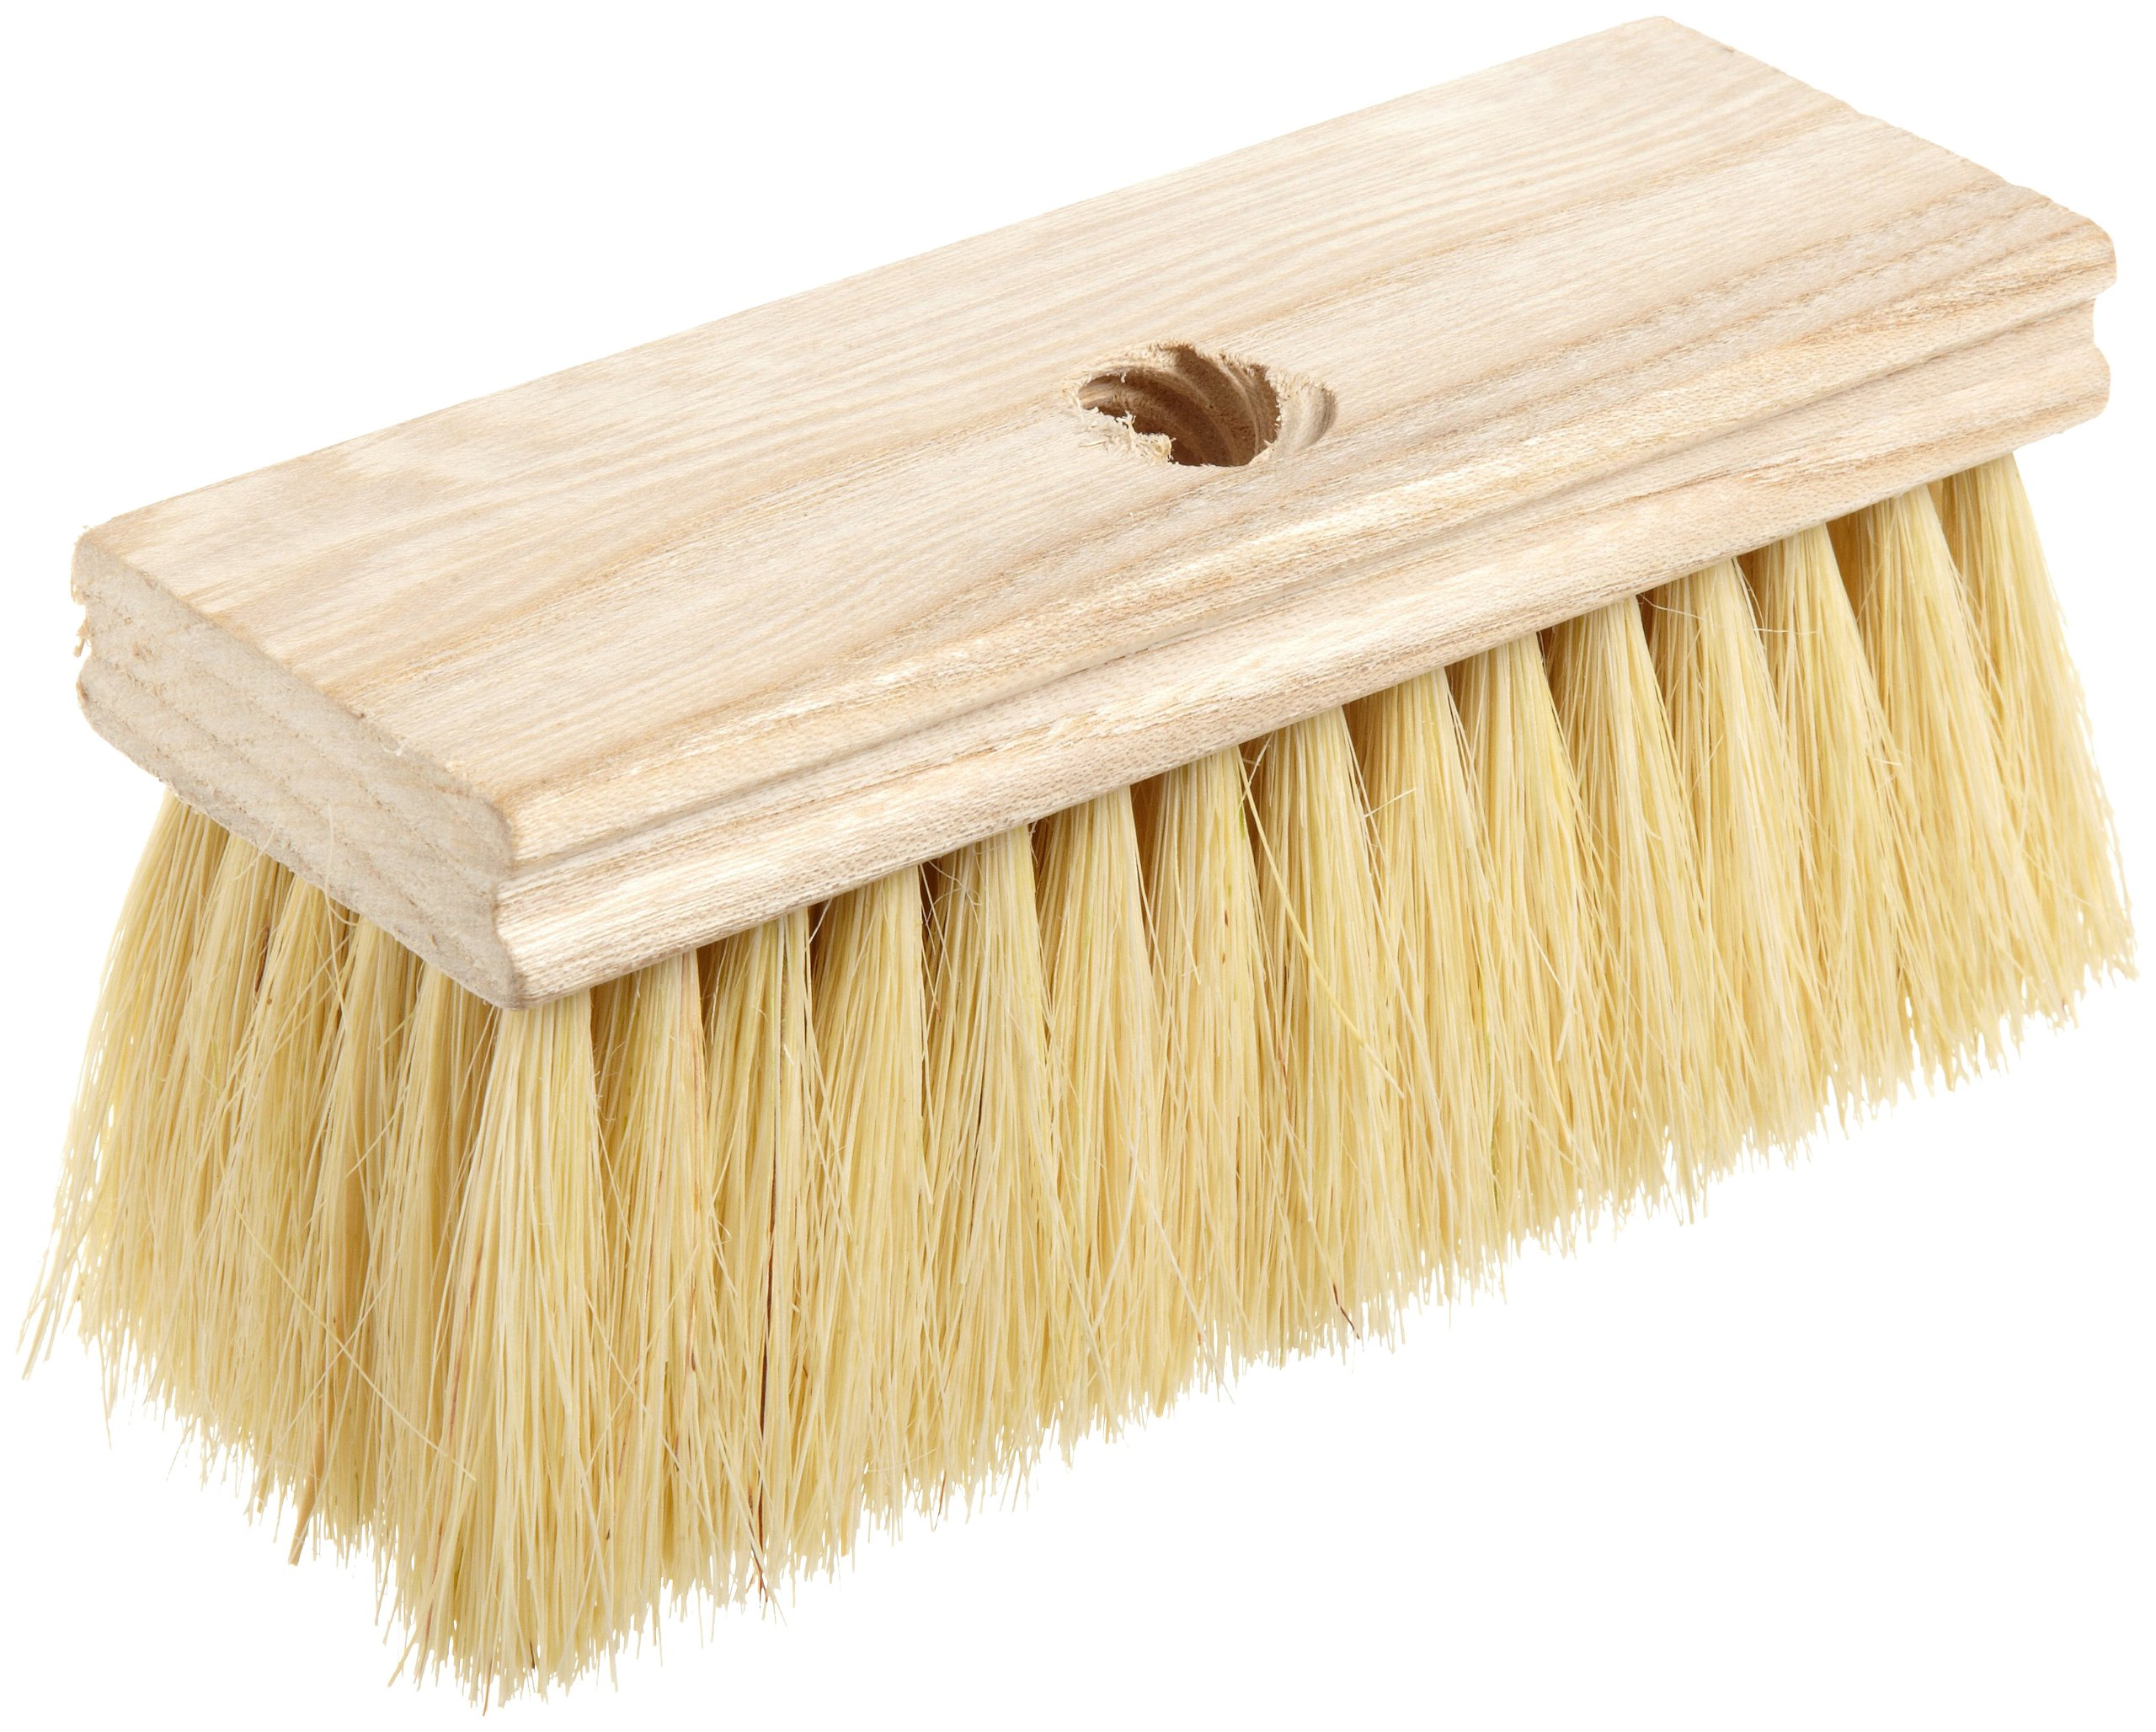 Roofers Brushes - white tampico roofers brush w/threaded [Set of 12]